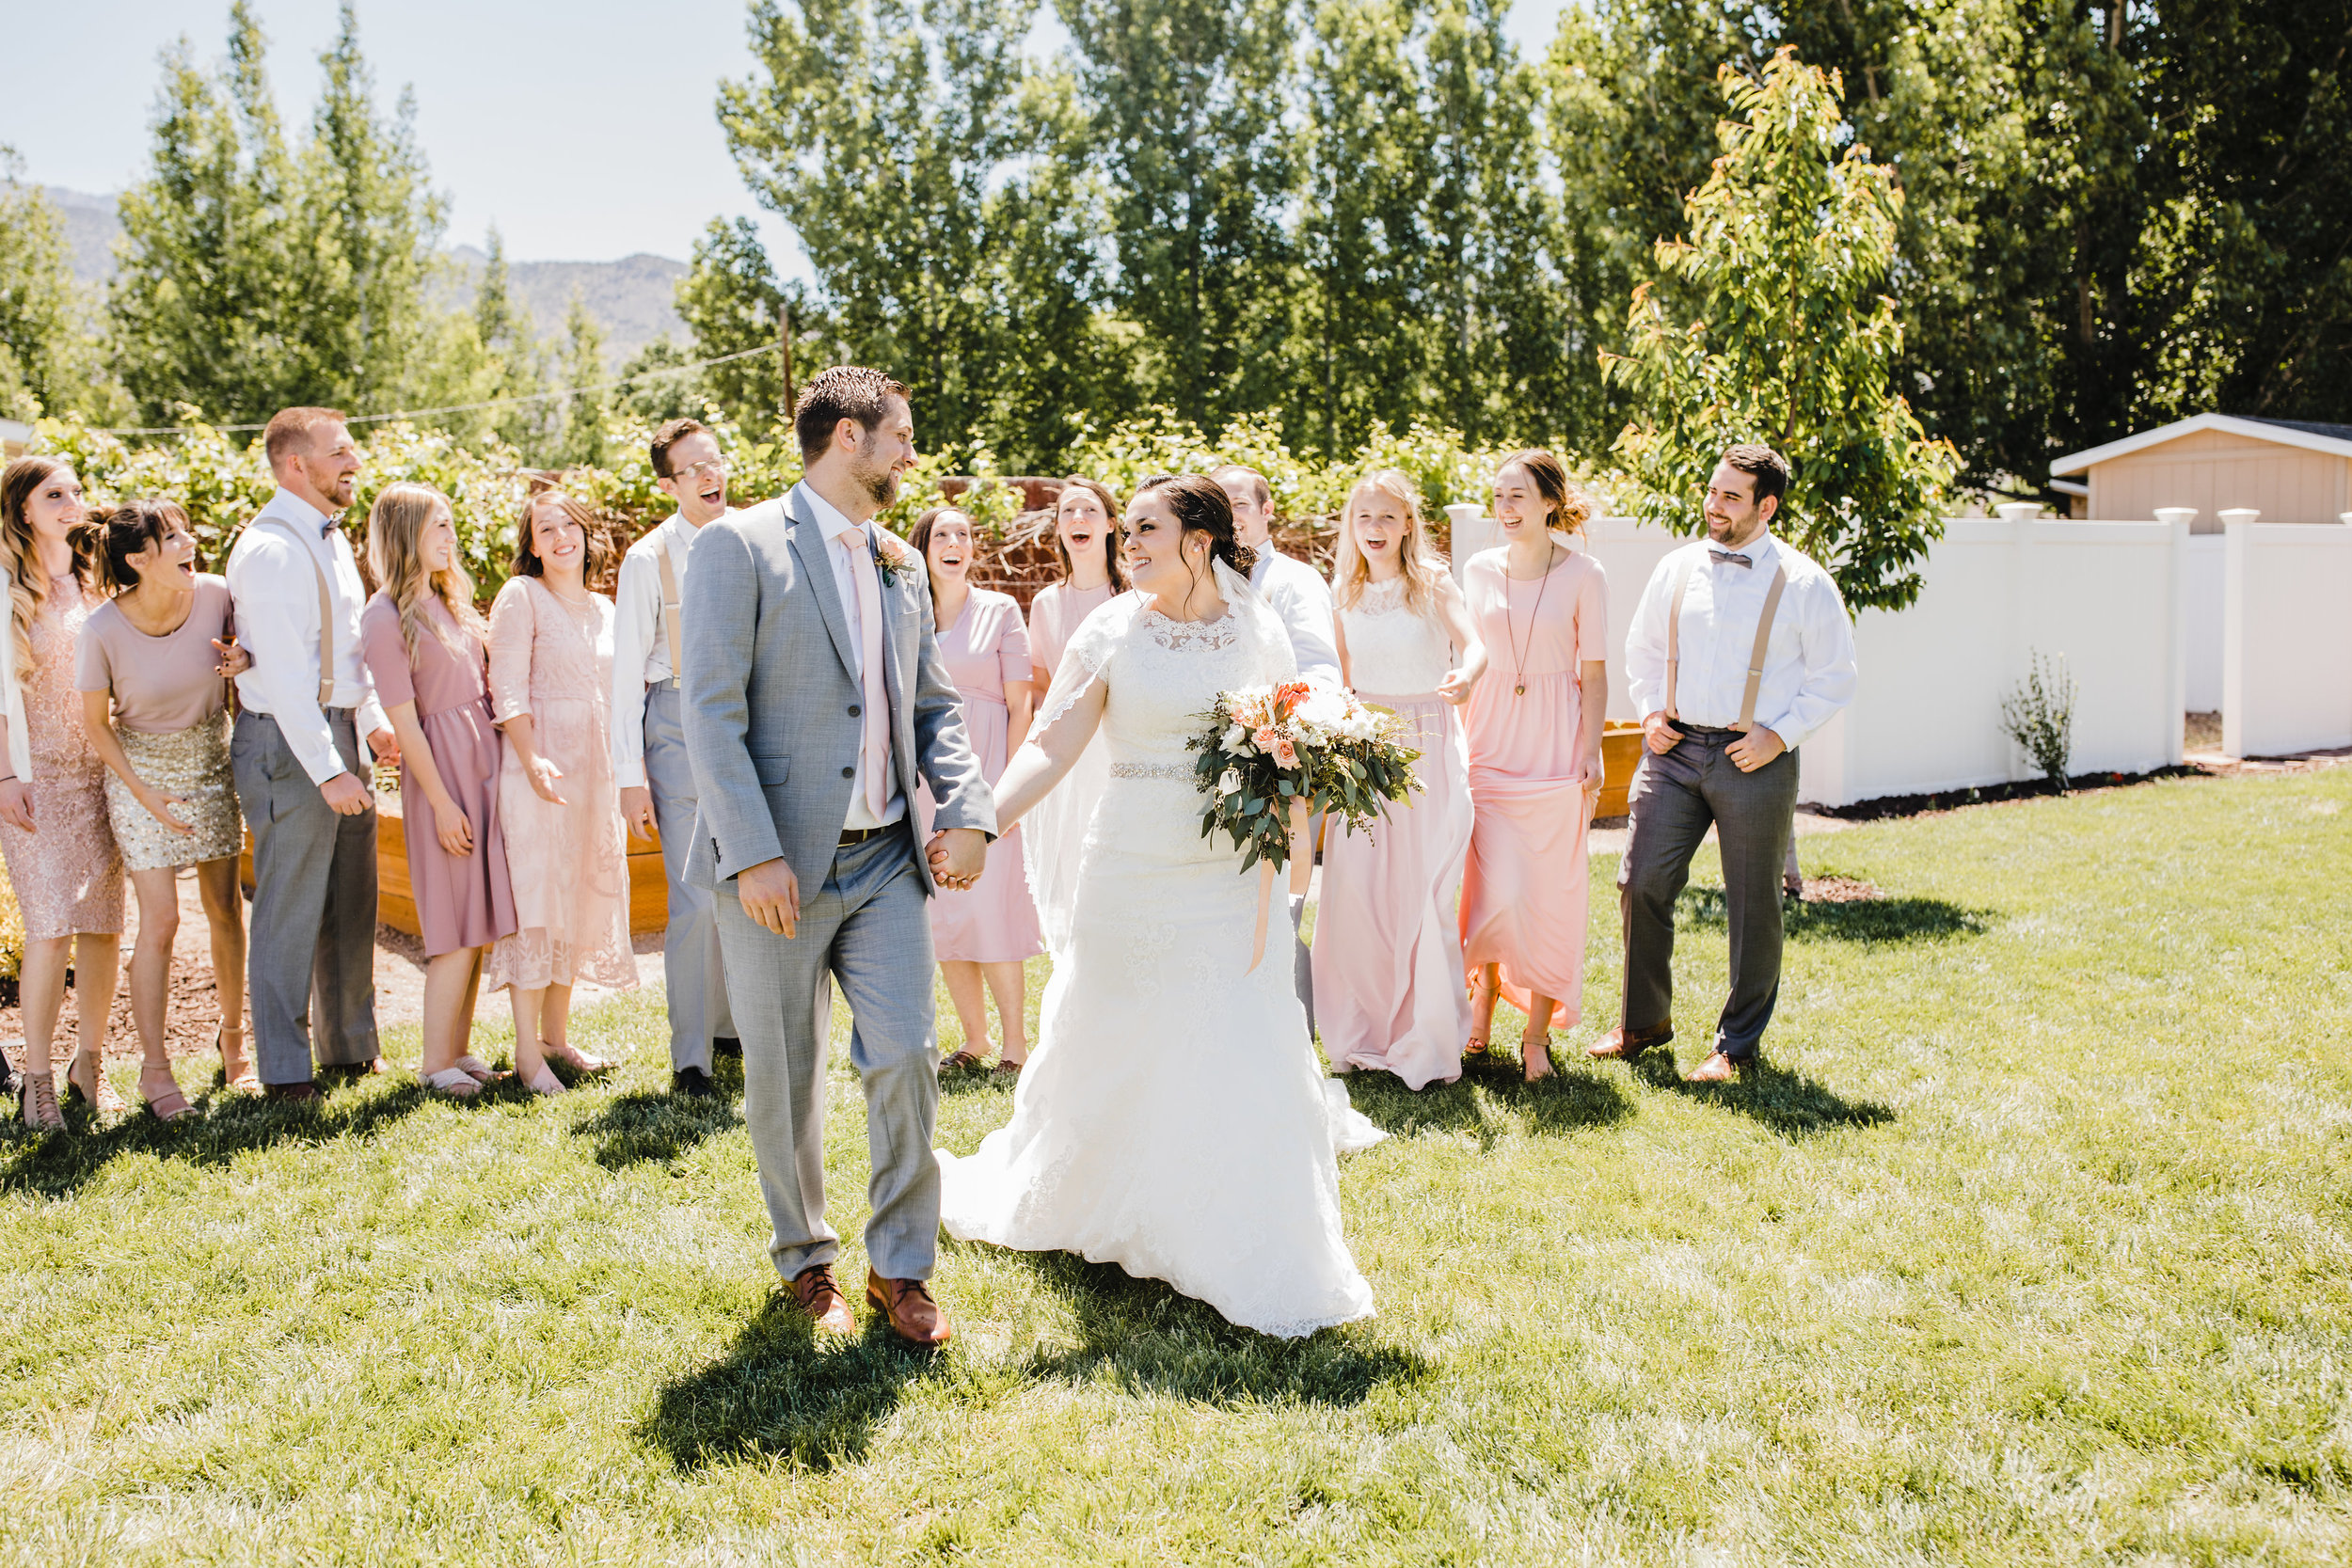 professional wedding photographer in provo utah utah valley wedding photographer lds backyard wedding laughter blush bridesmaids dresses holding hands groomsmen suspenders